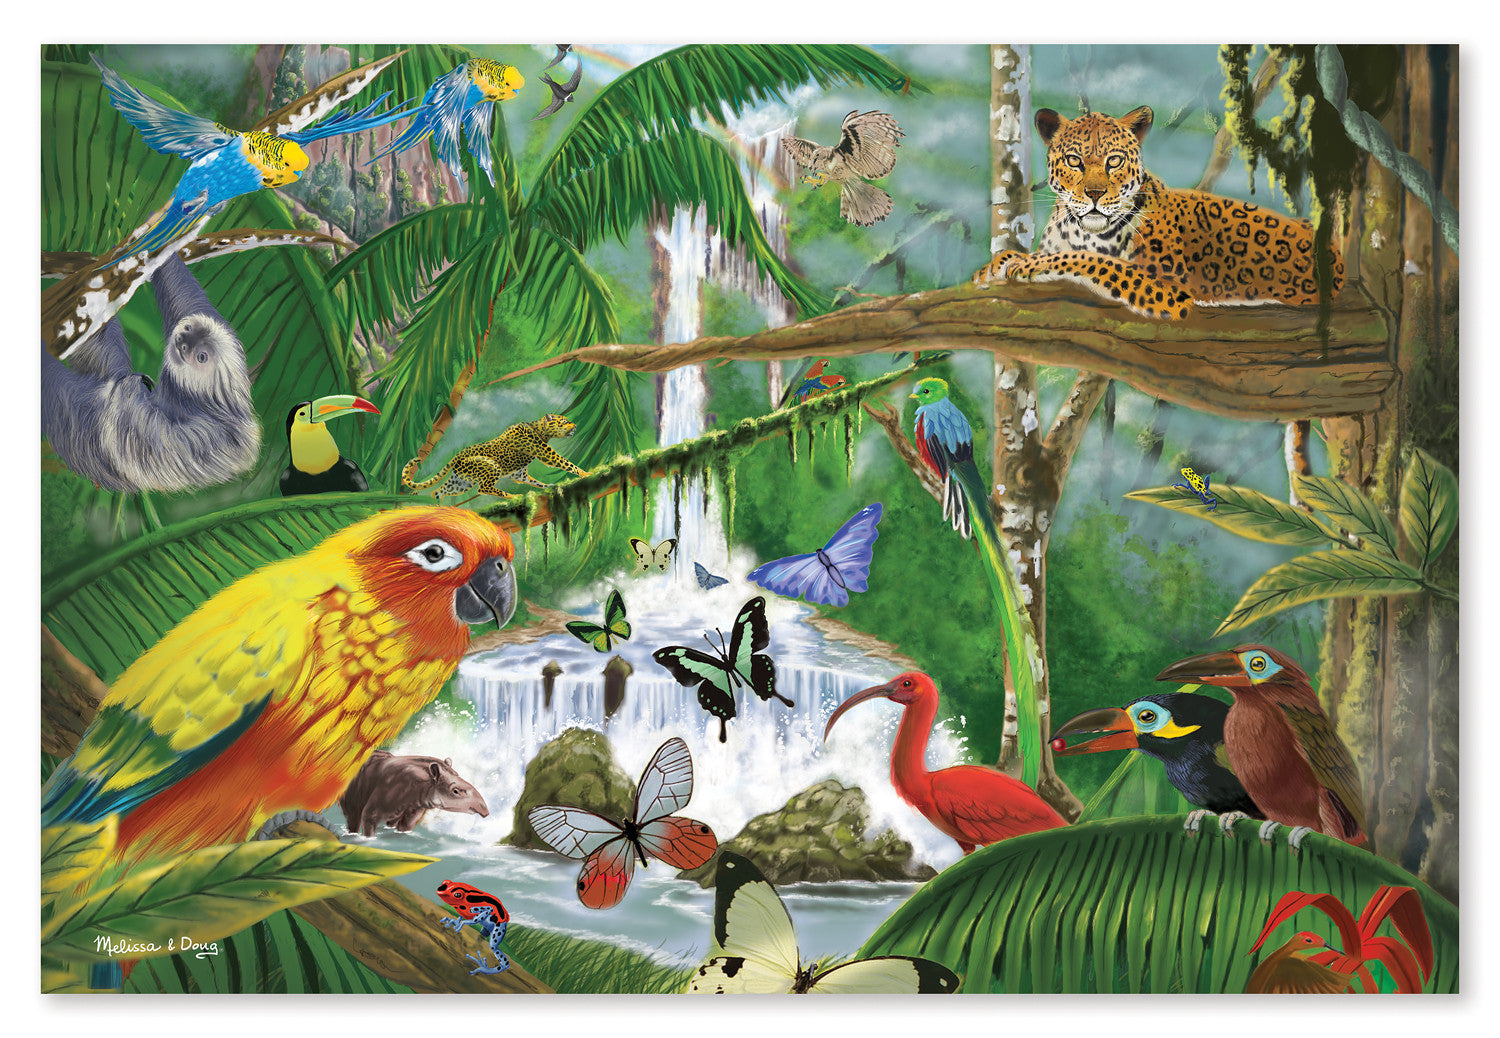 Melissa & Doug Rain Forest Majesty 48pc Floor Puzzle 8902